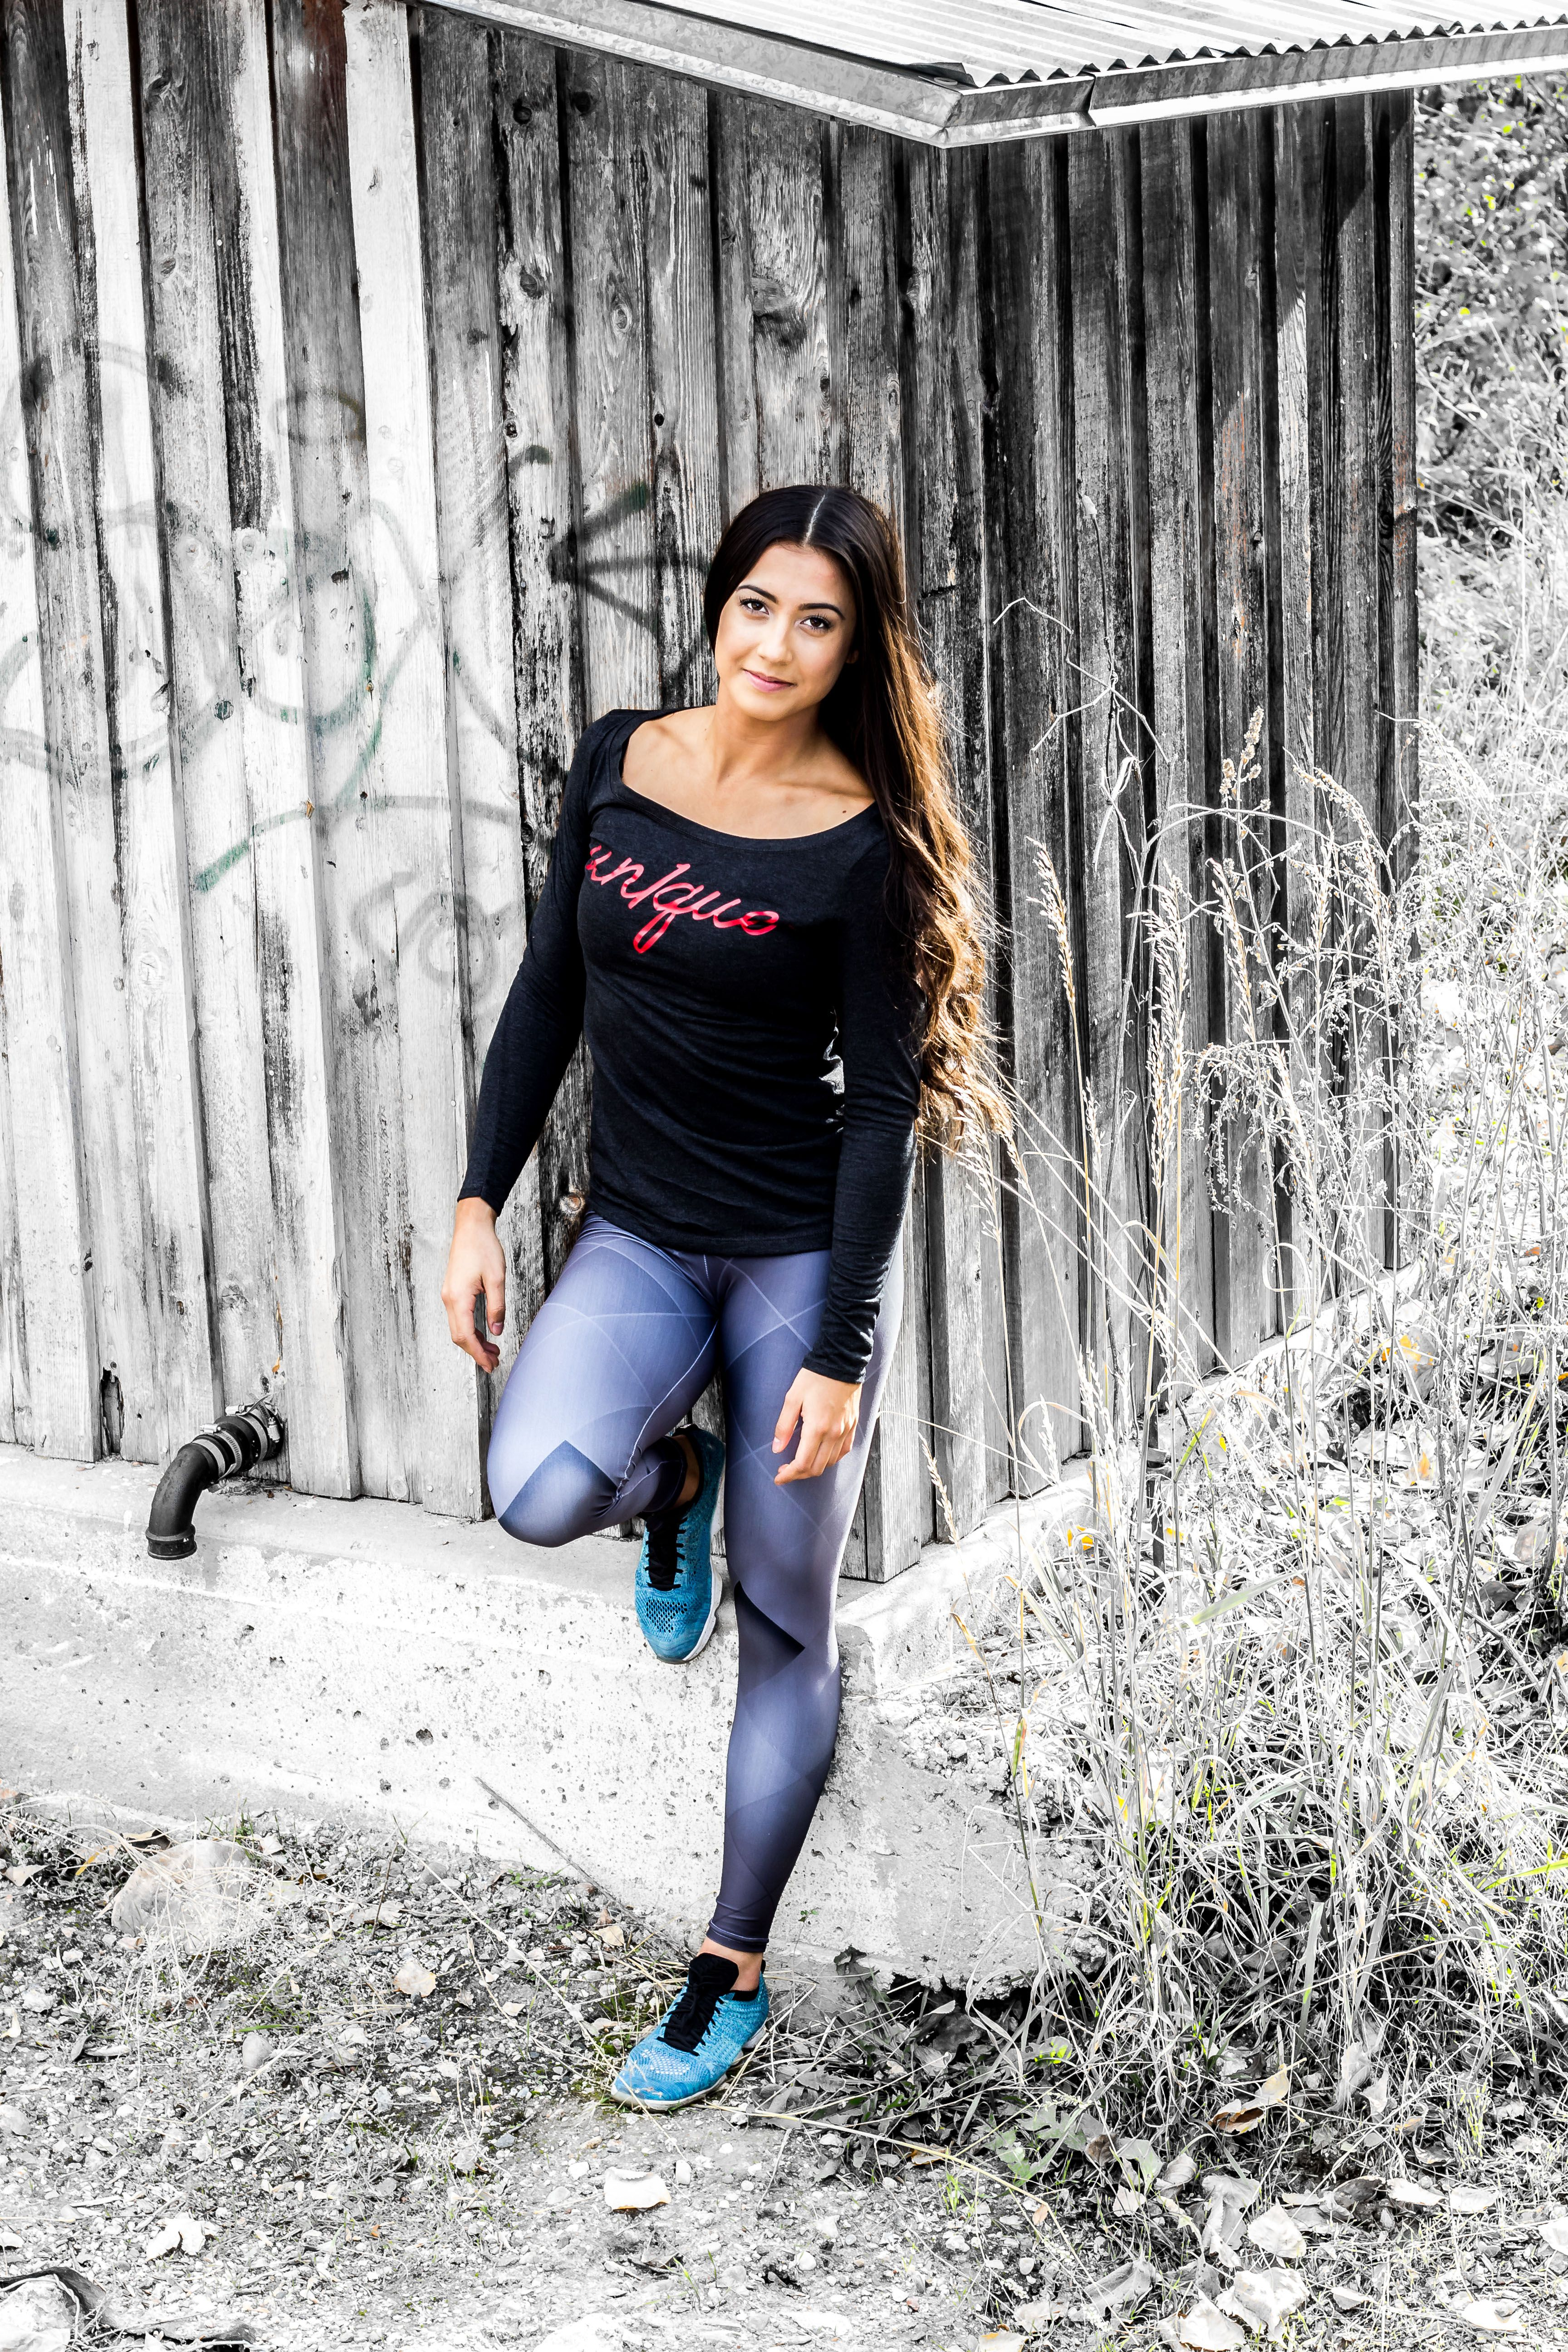 Be the first to get these limited edition leggings. Only ten pair available!